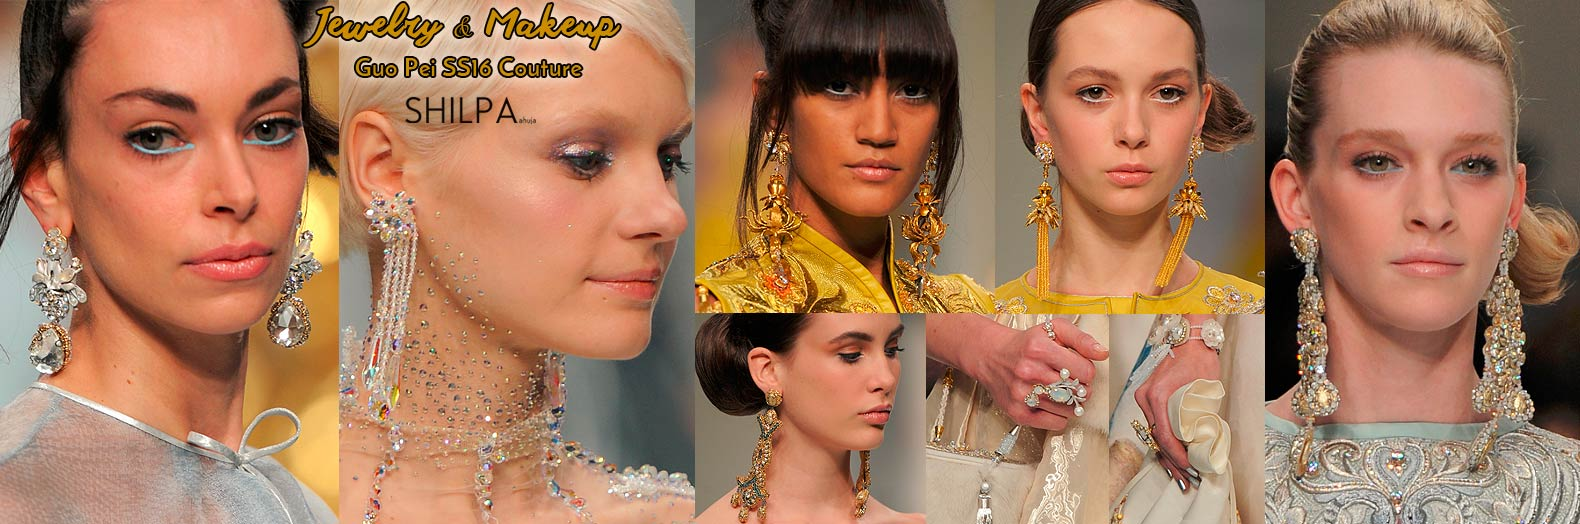 guo-pei-spring-summer-2016-couture-show-jewelry-makeup-earrings-eye